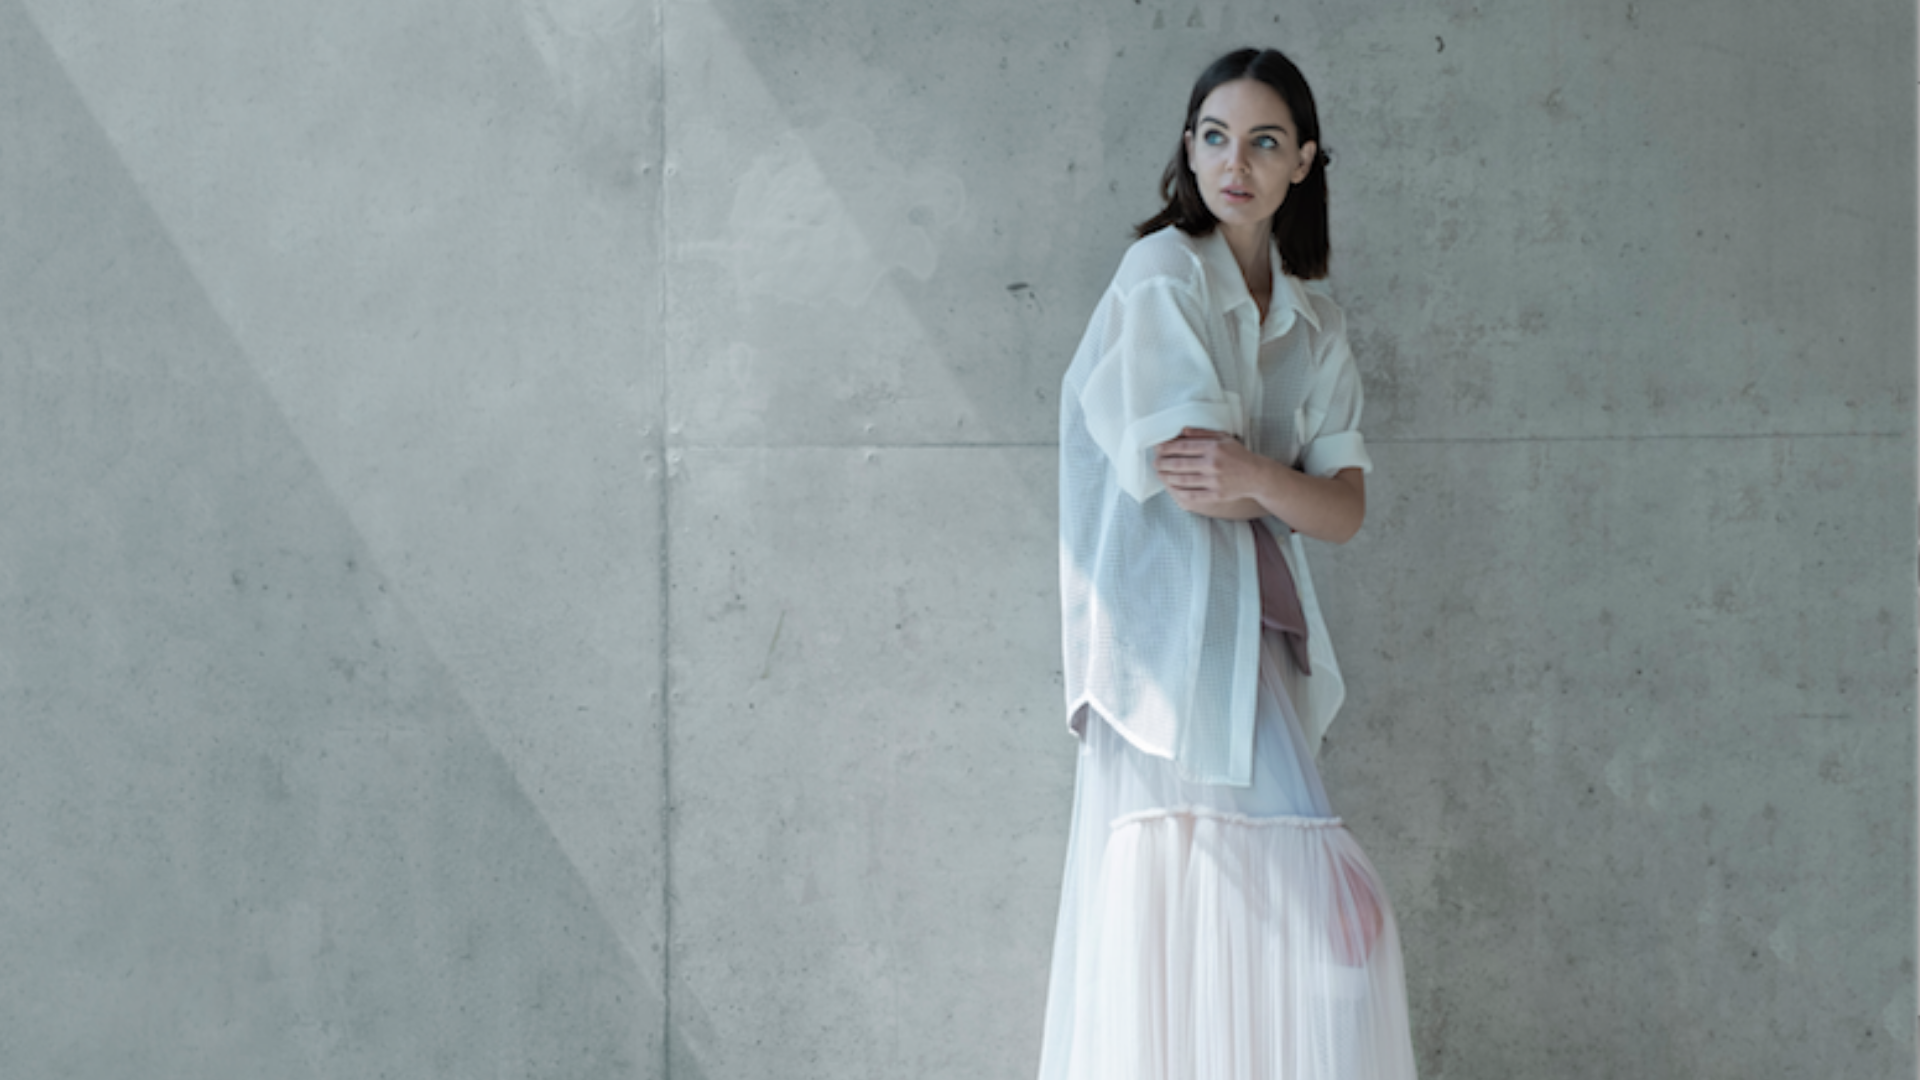 BLSSD Showcases Resort 2020 Collection At Alserkal Avenue